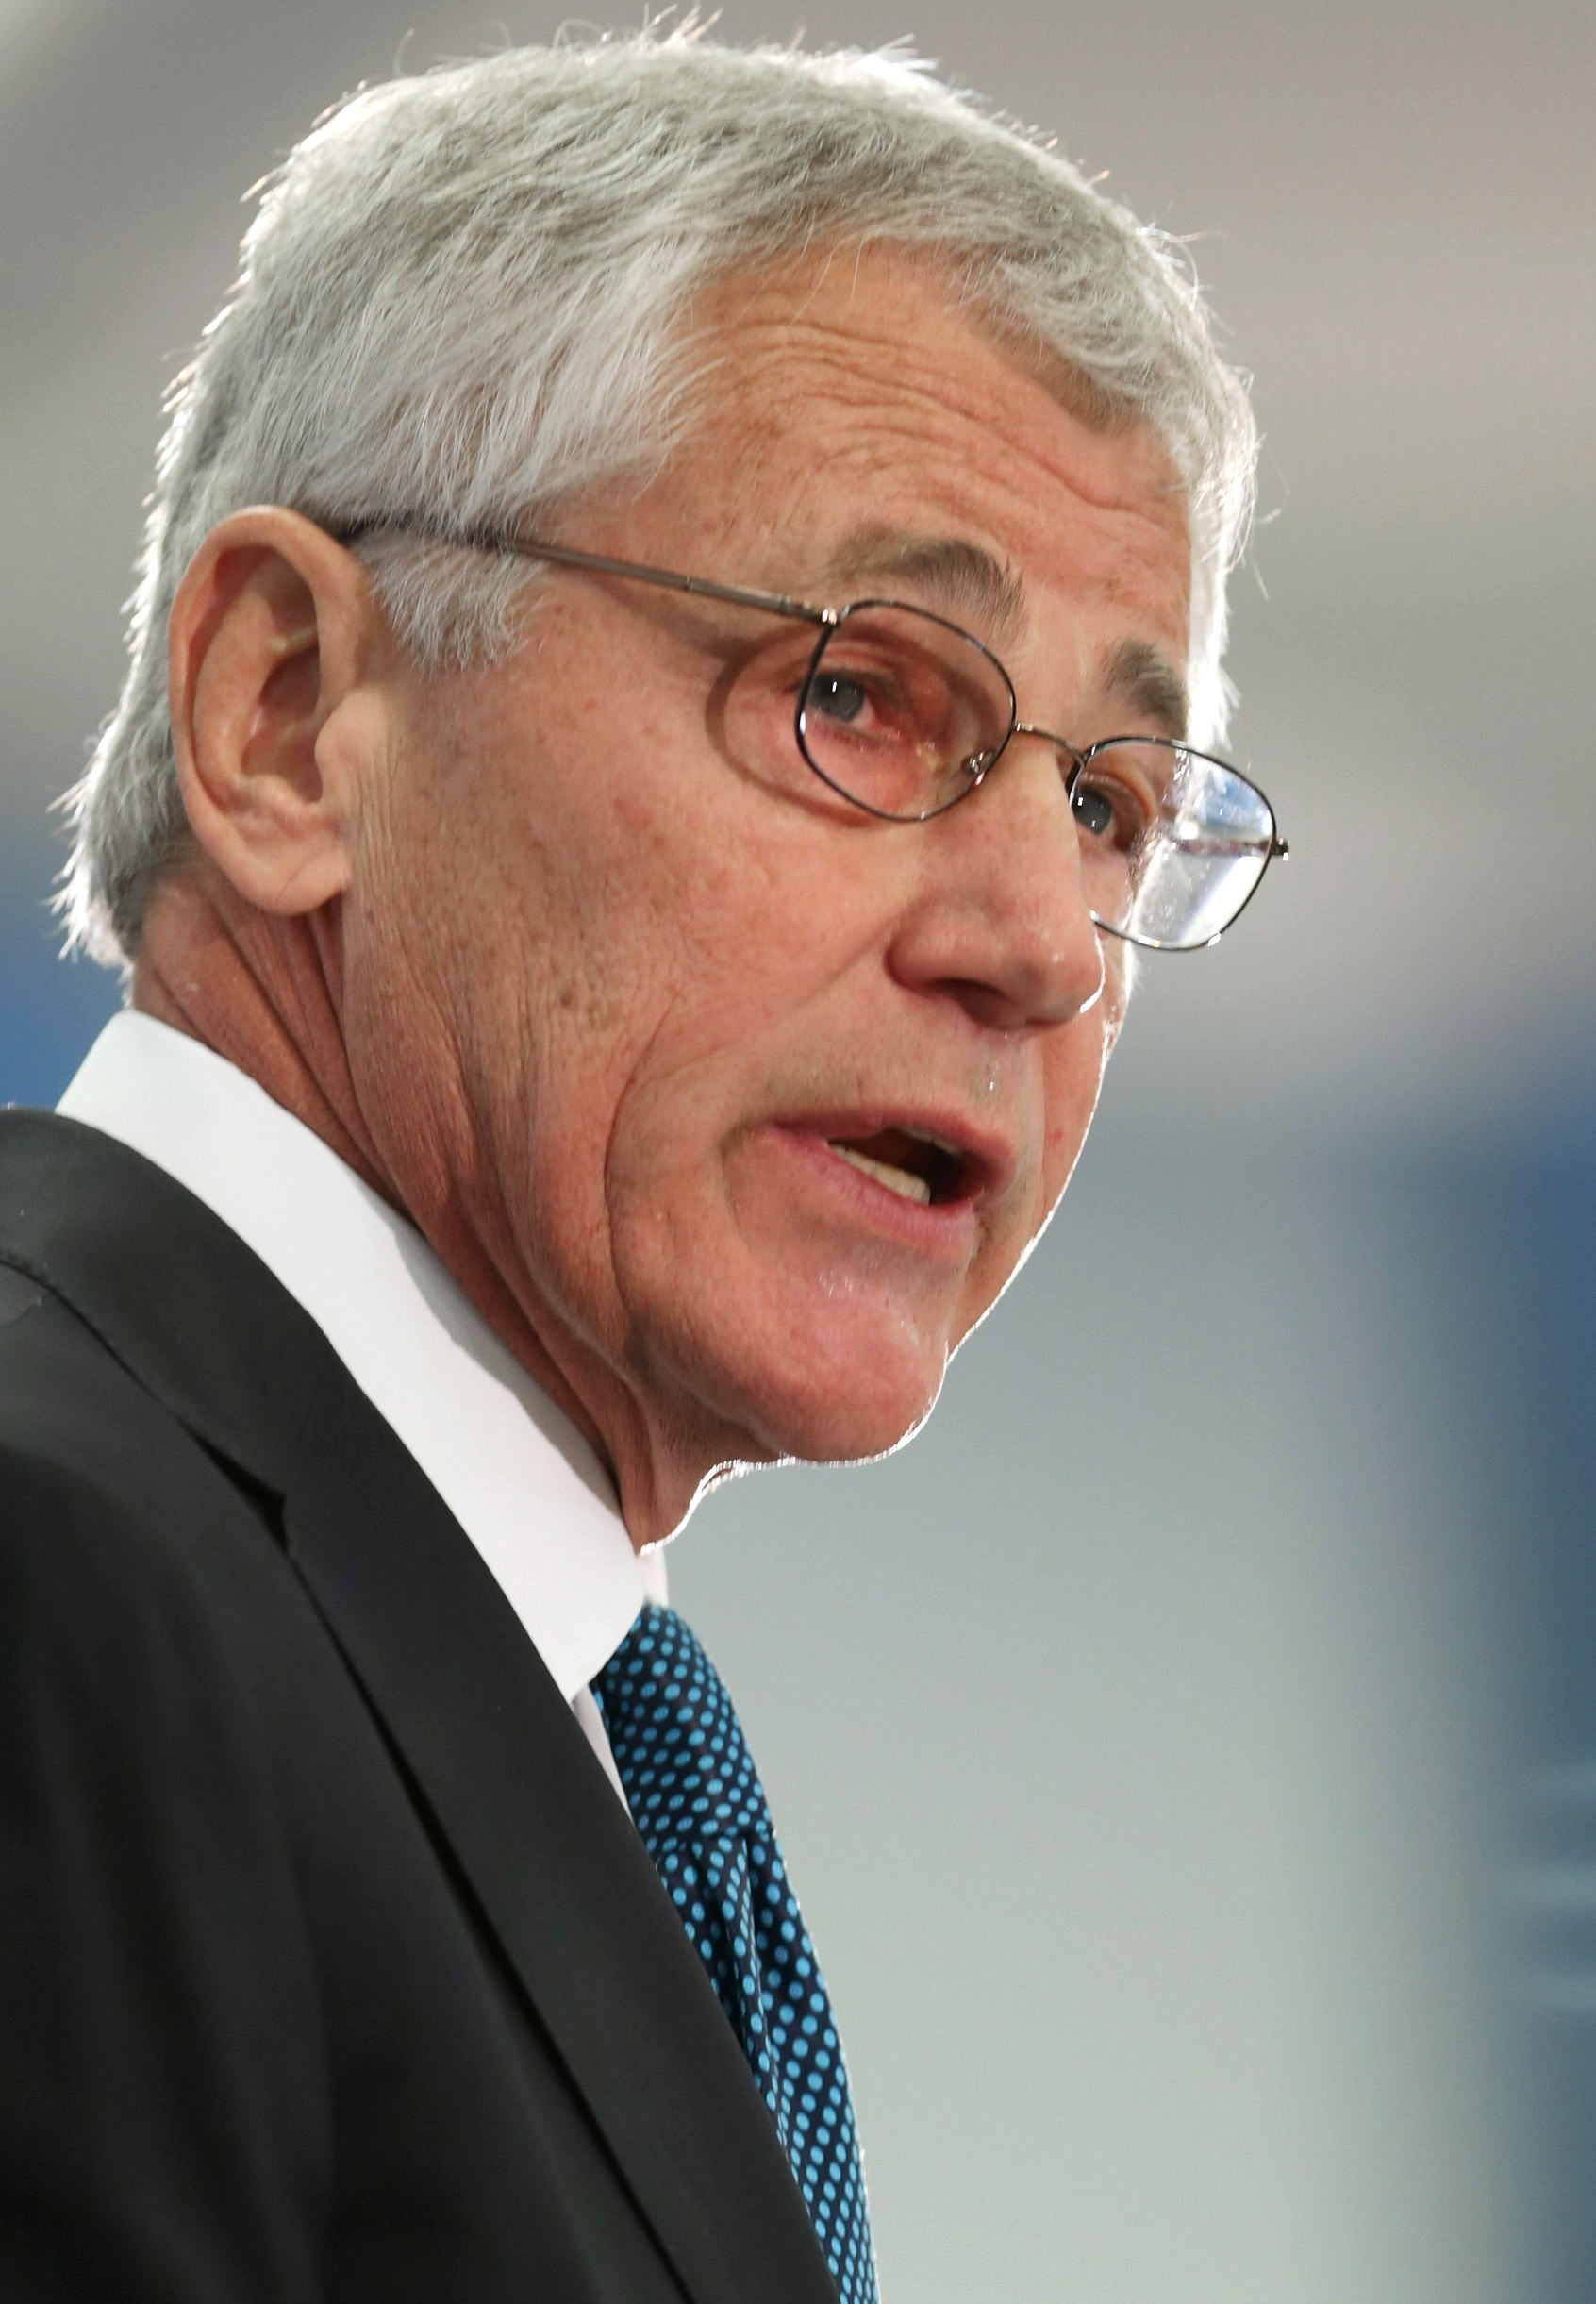 Soaring Personnel Costs Threaten Readiness, Hagel Warns